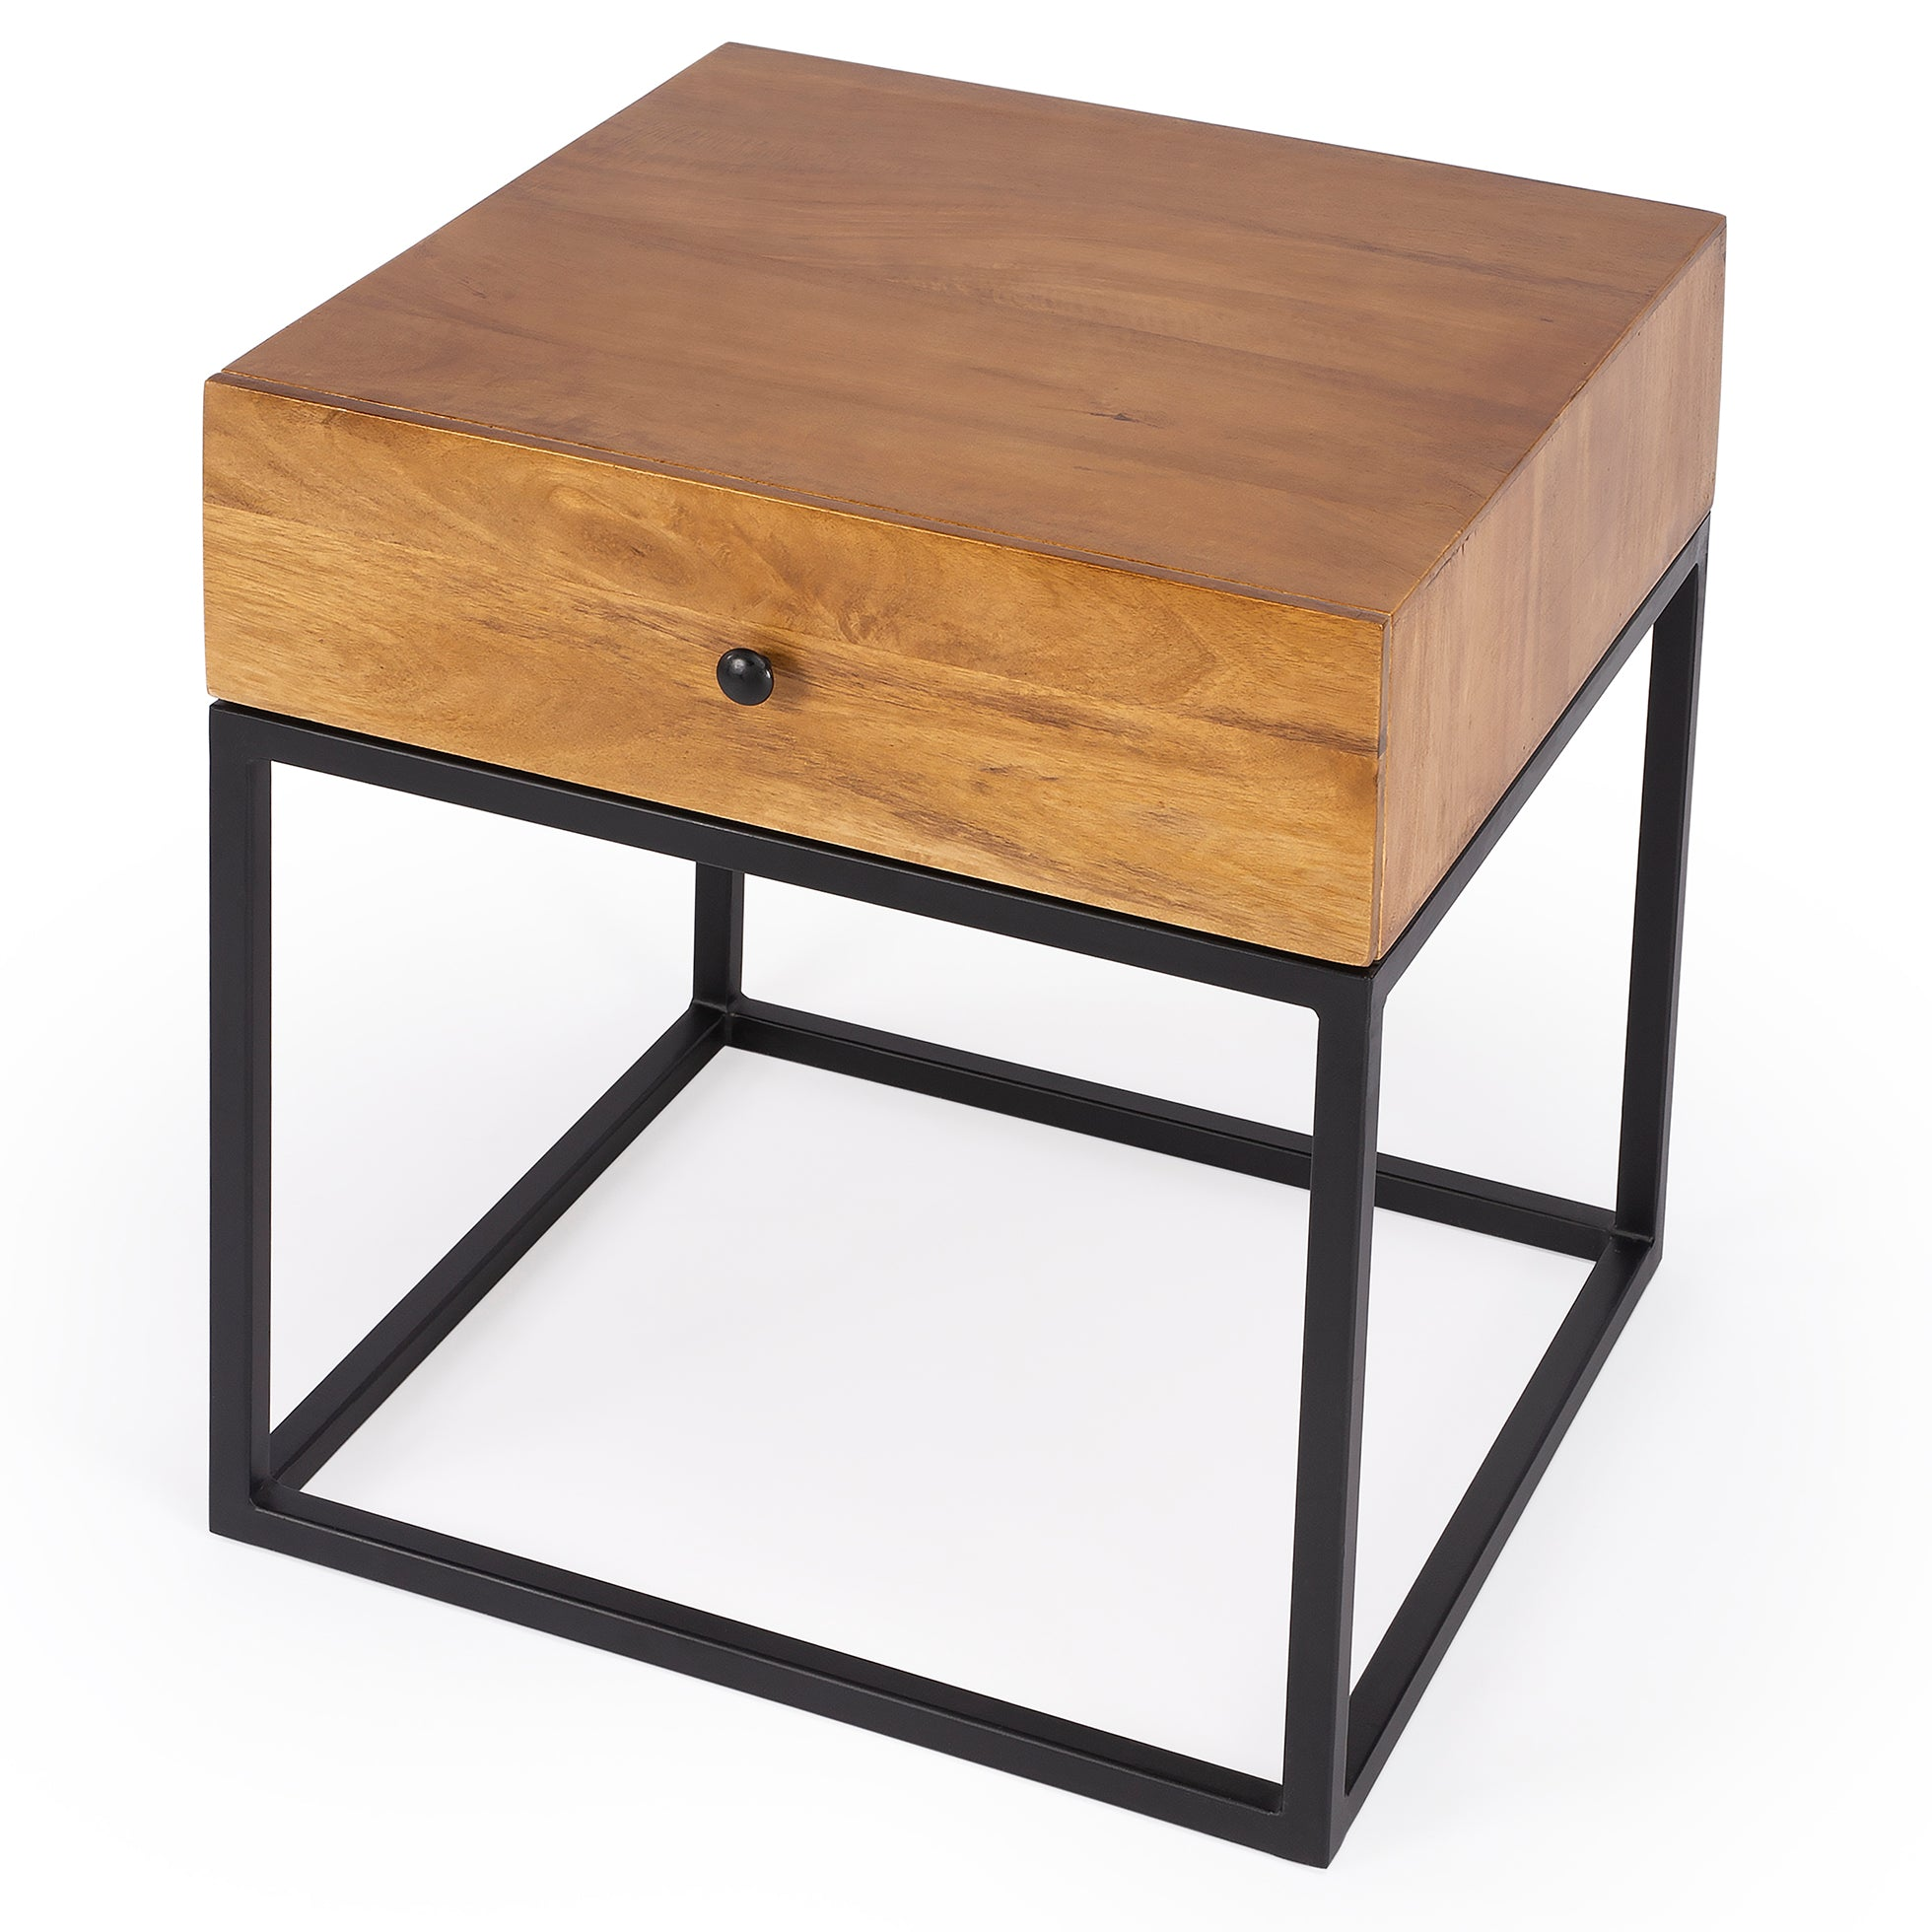 Industrial Modern Iron and Wood Nightstand End Table